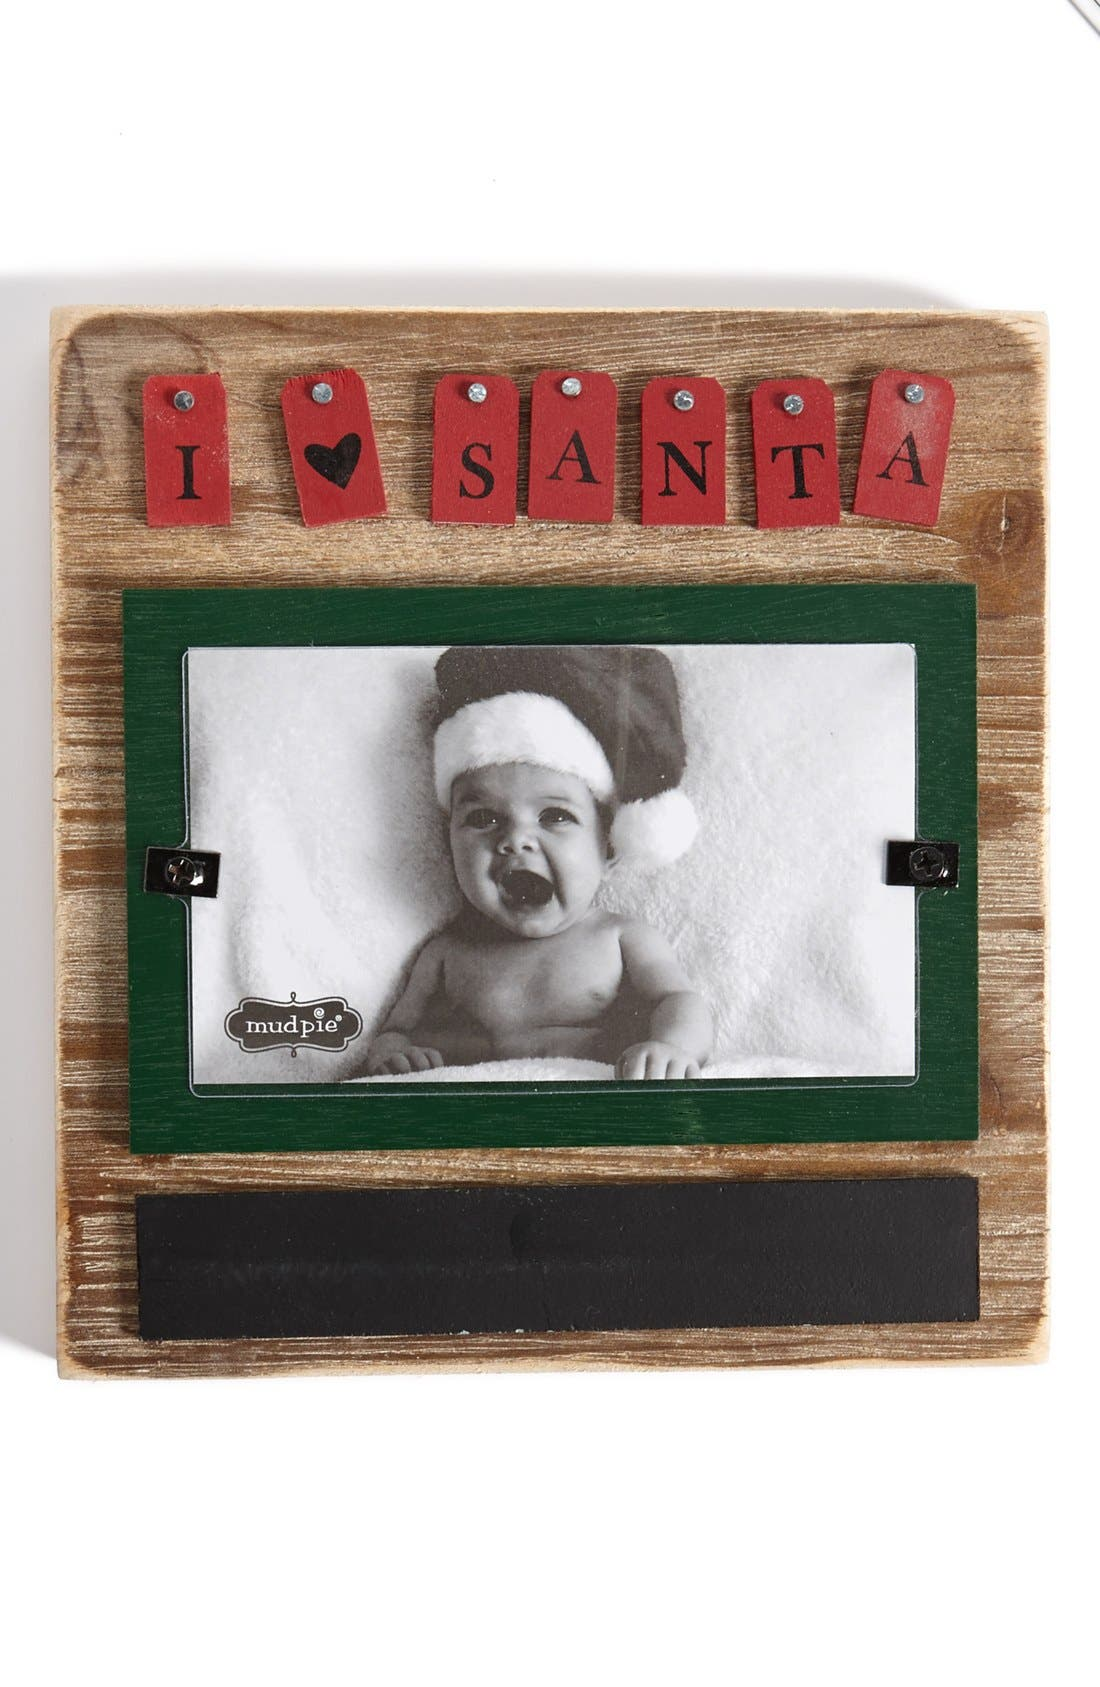 Alternate Image 1 Selected - Mud Pie 'I Love Santa' Wood Frame